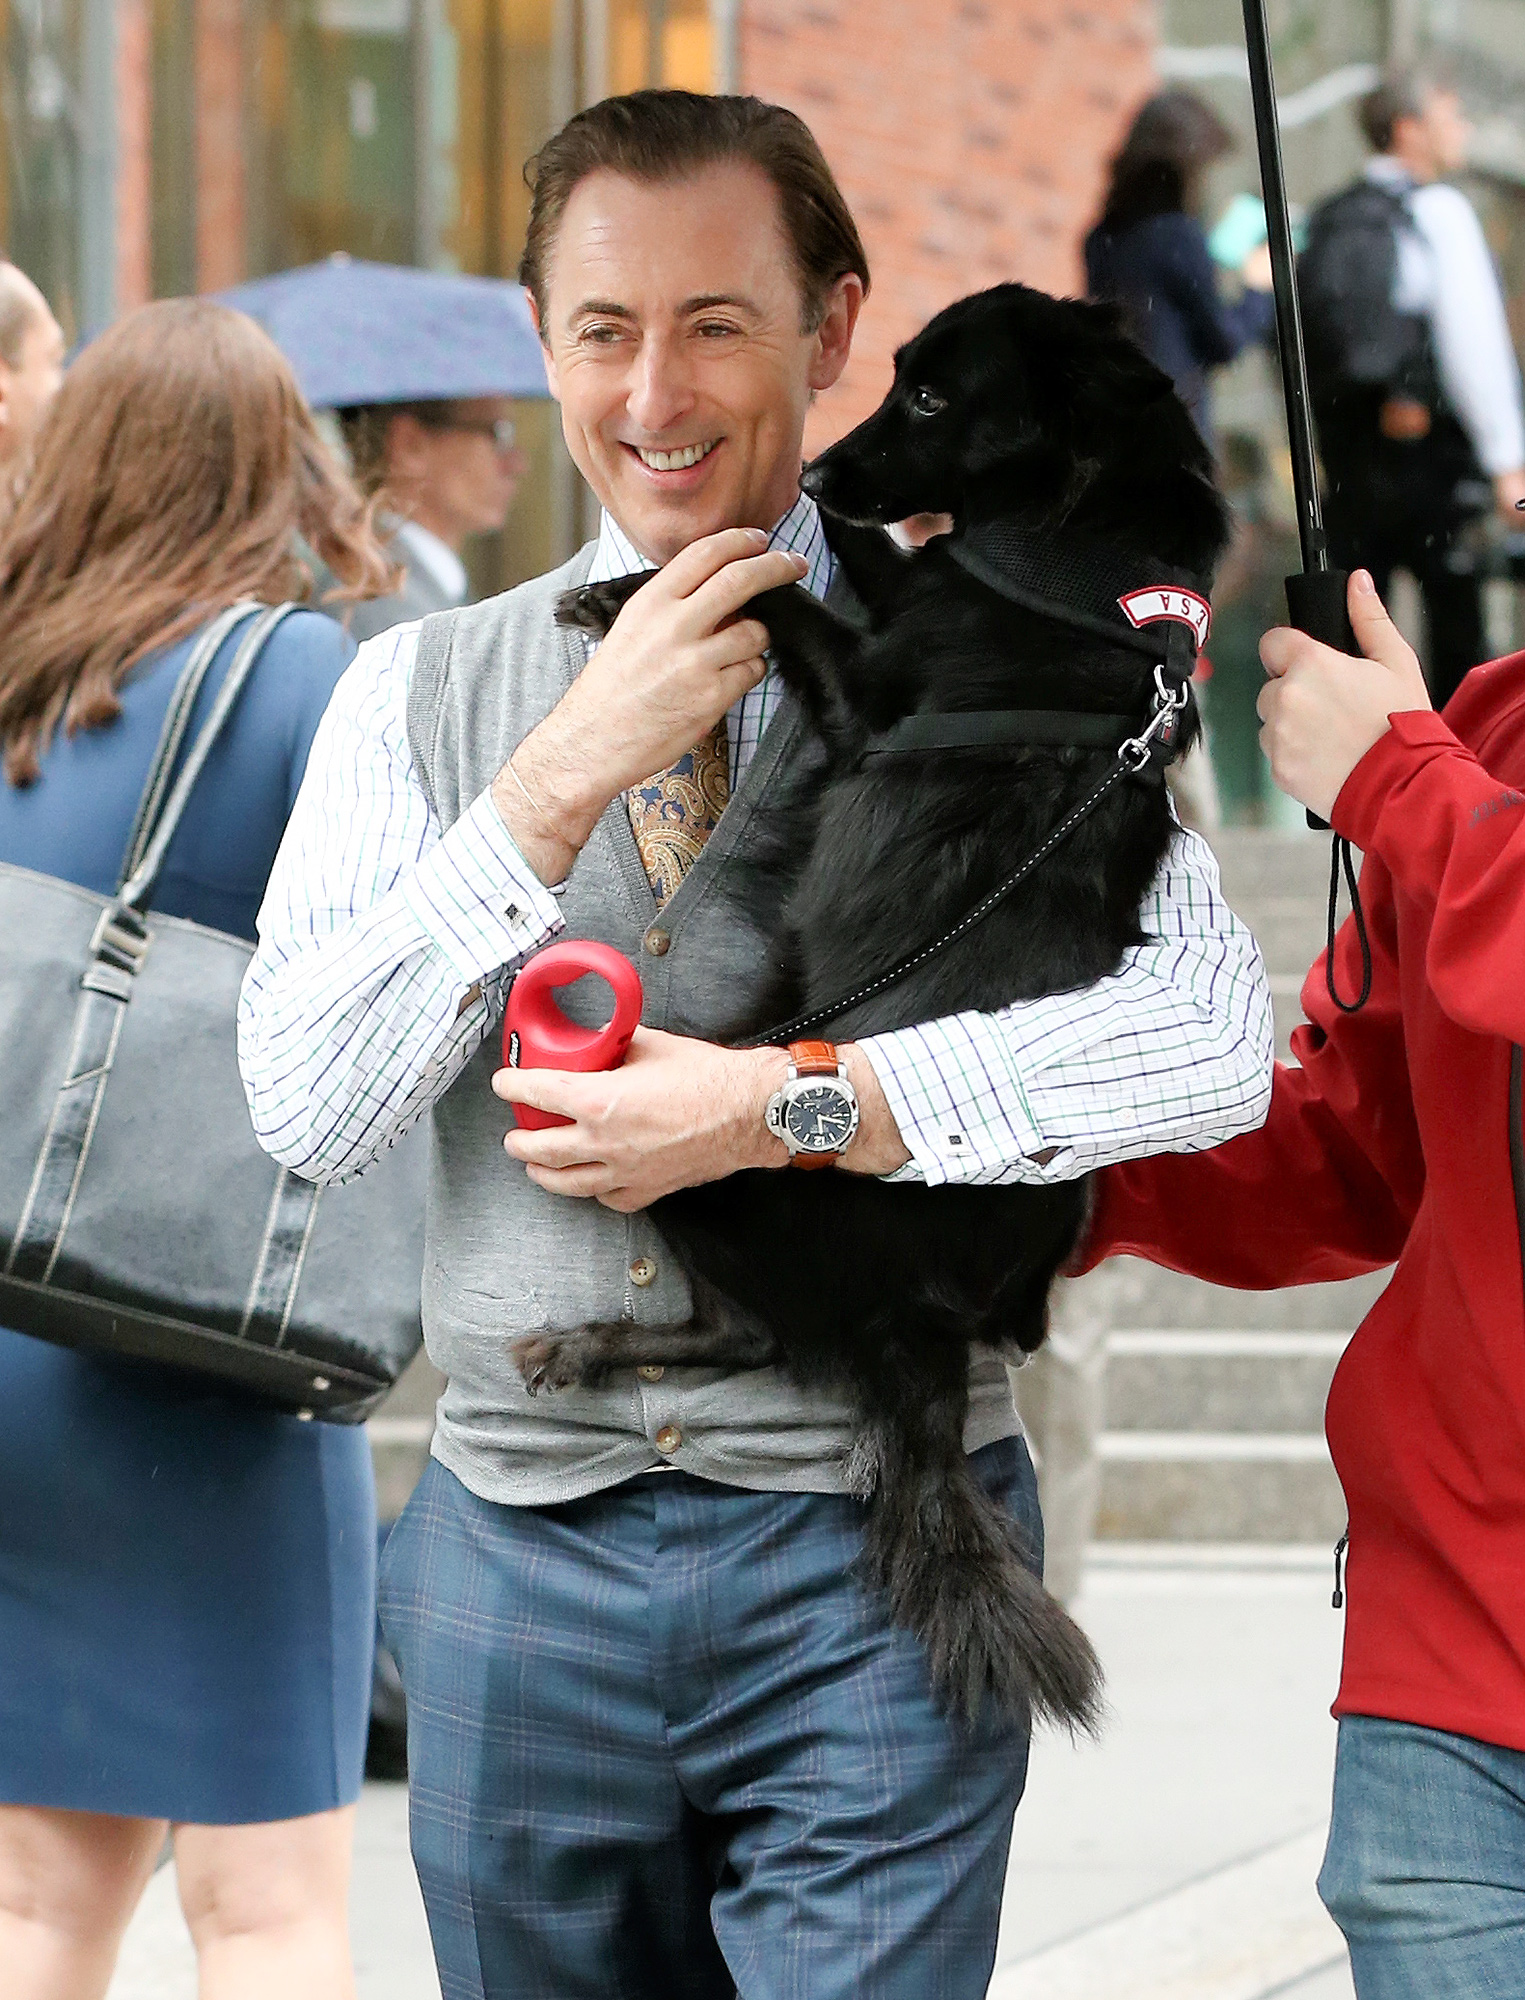 EXCLUSIVE: Actor Alan Cumming gets a surprise visit from his dog Lala on the set of 'Instinct' in New York City!